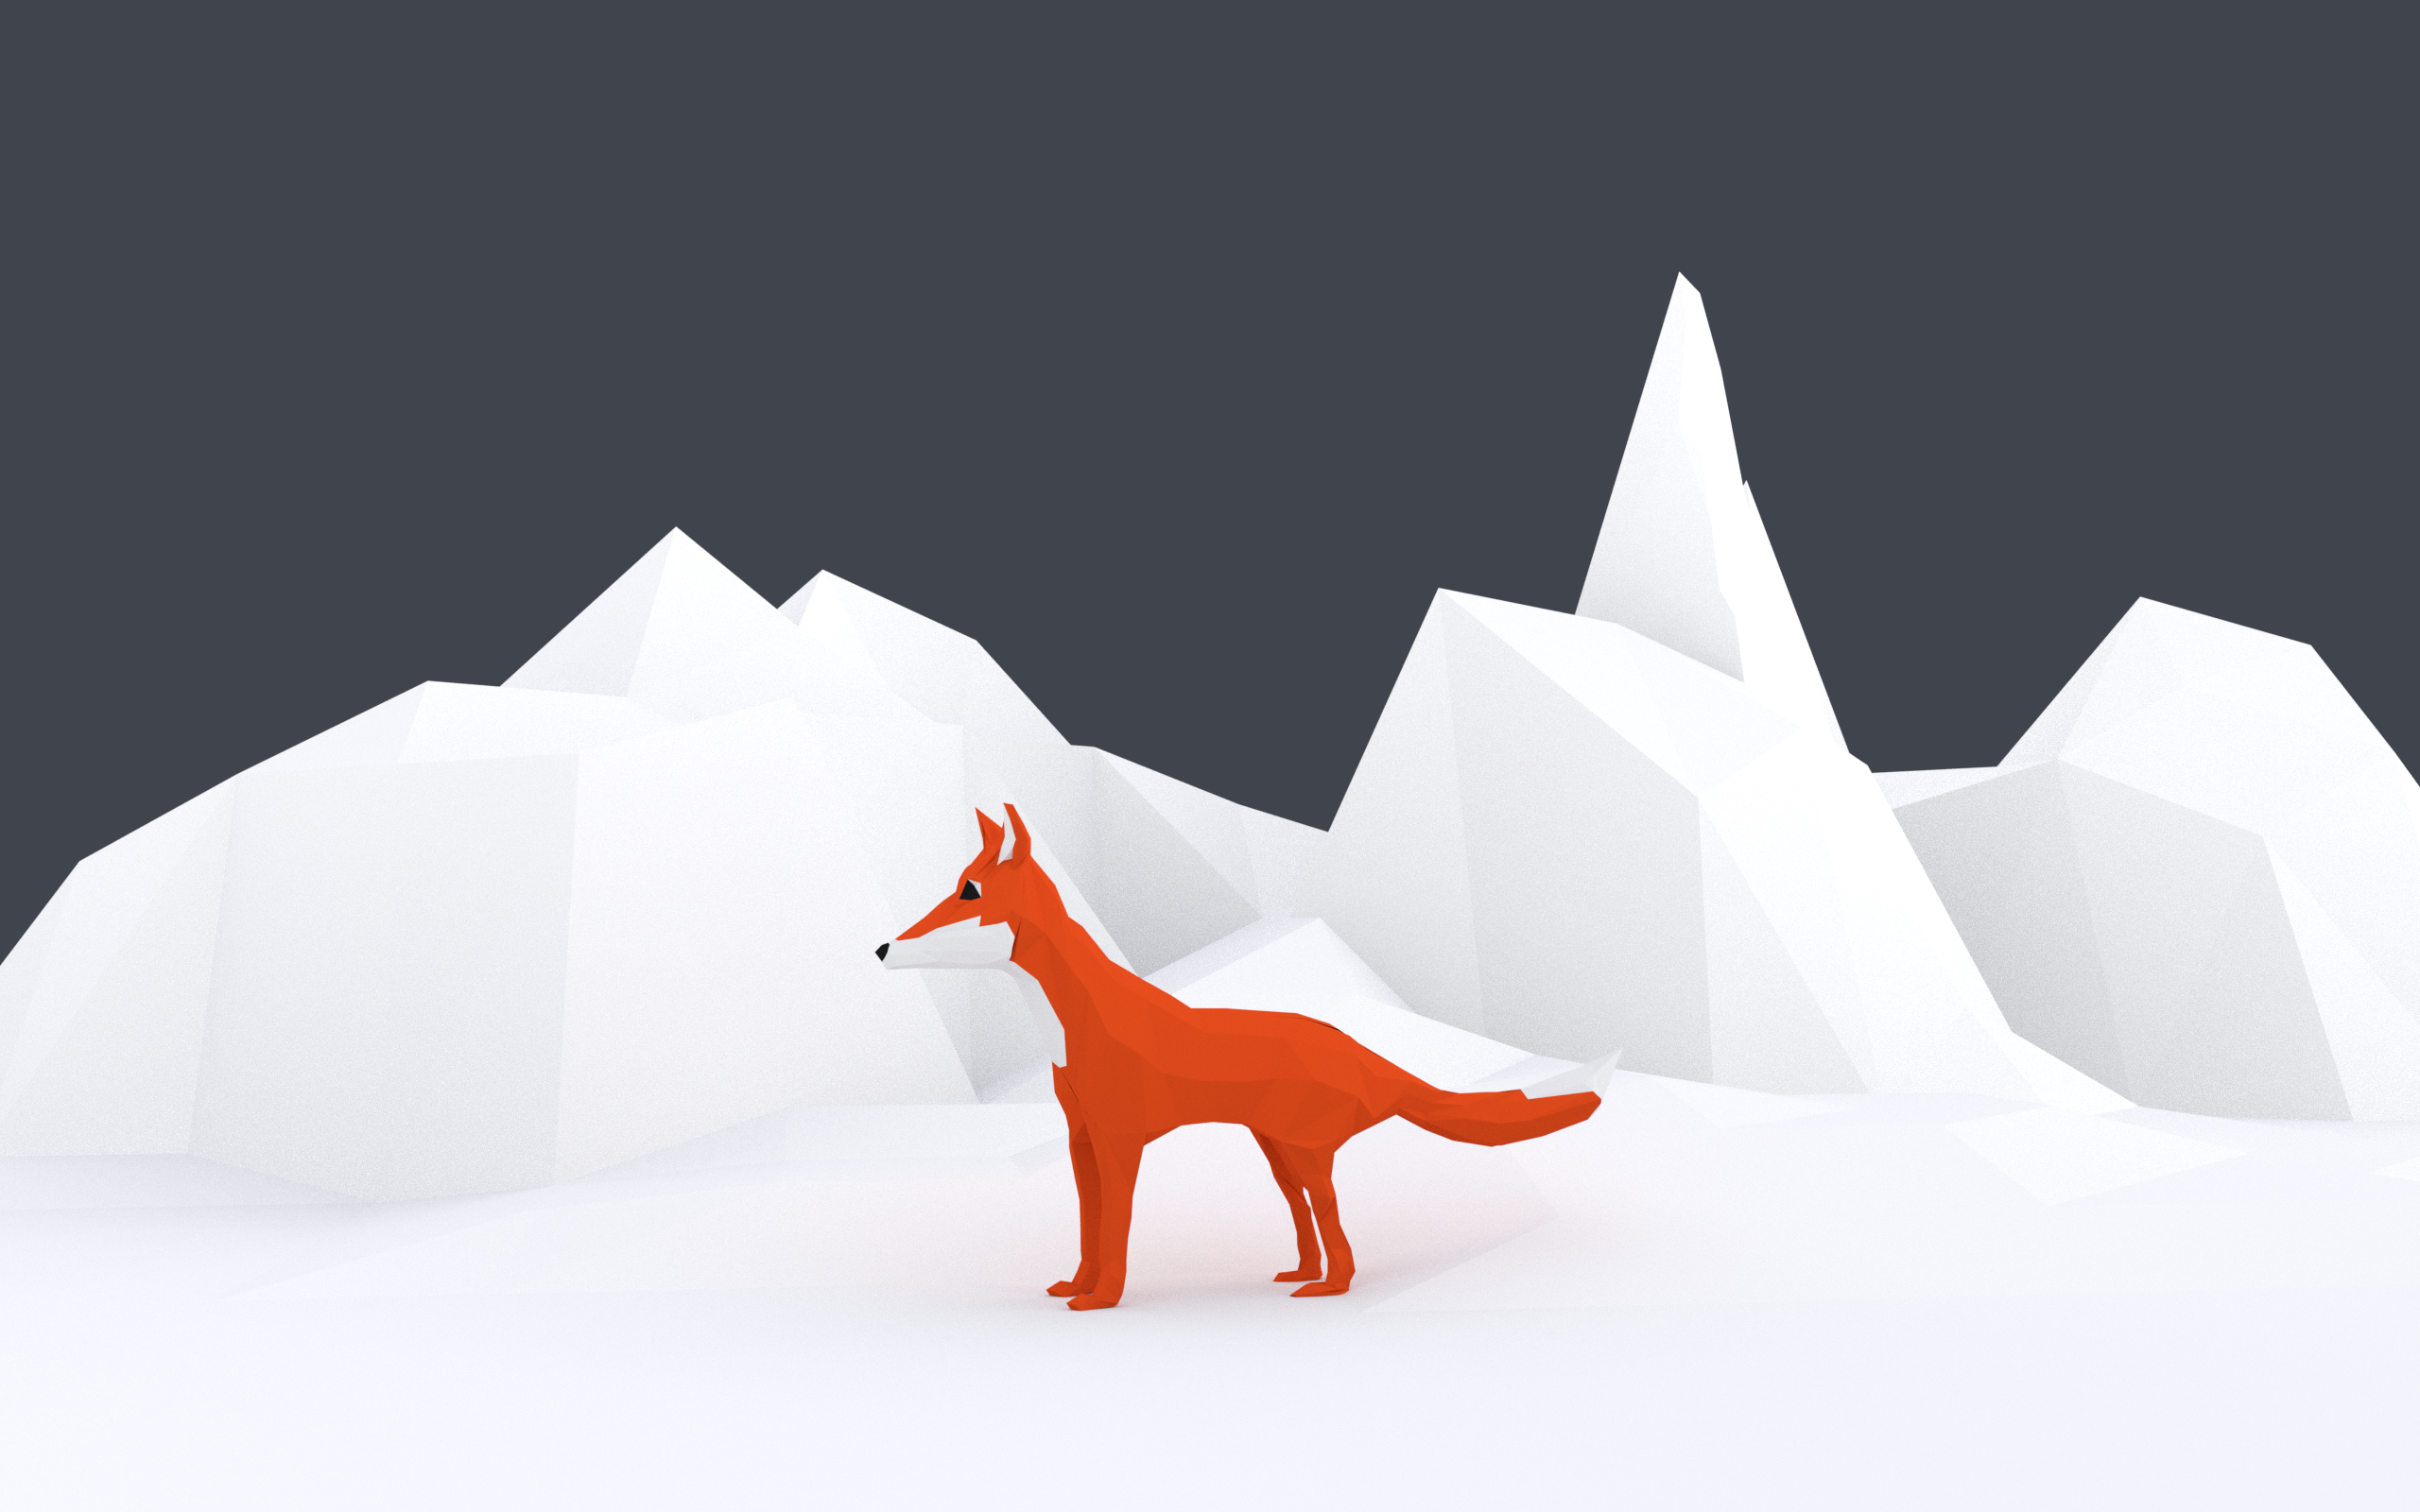 WIP - Low Poly Fox